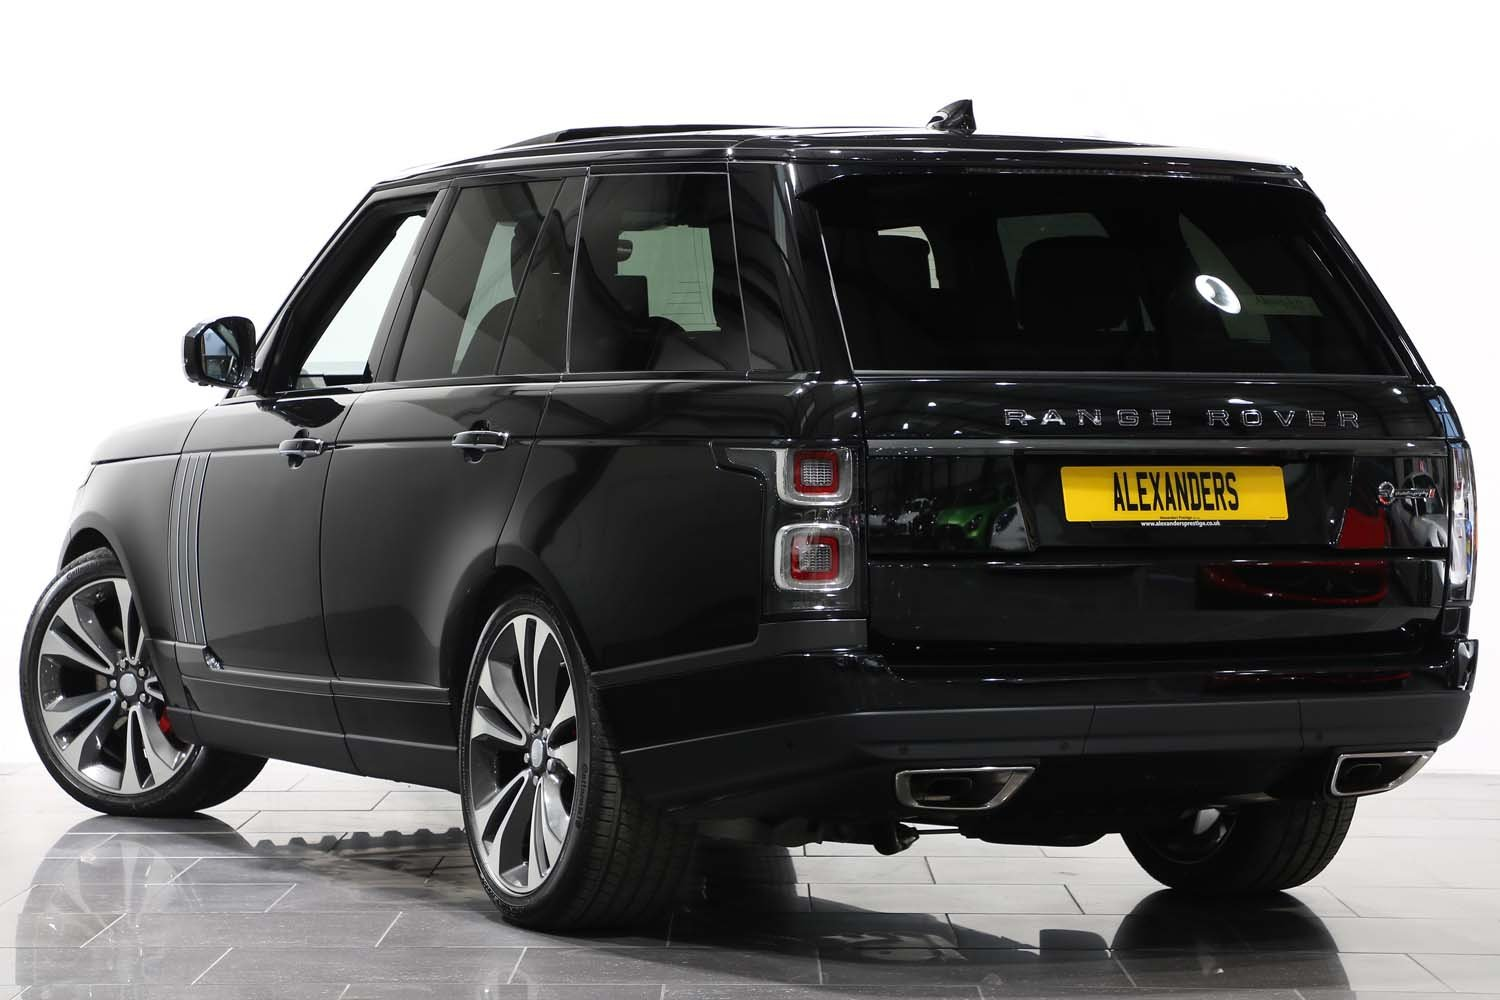 2019 19 RANGE ROVER 5.0 V8 SVAUTOBIOGRAPHY DYNAMIC AUTO  For Sale (picture 3 of 6)